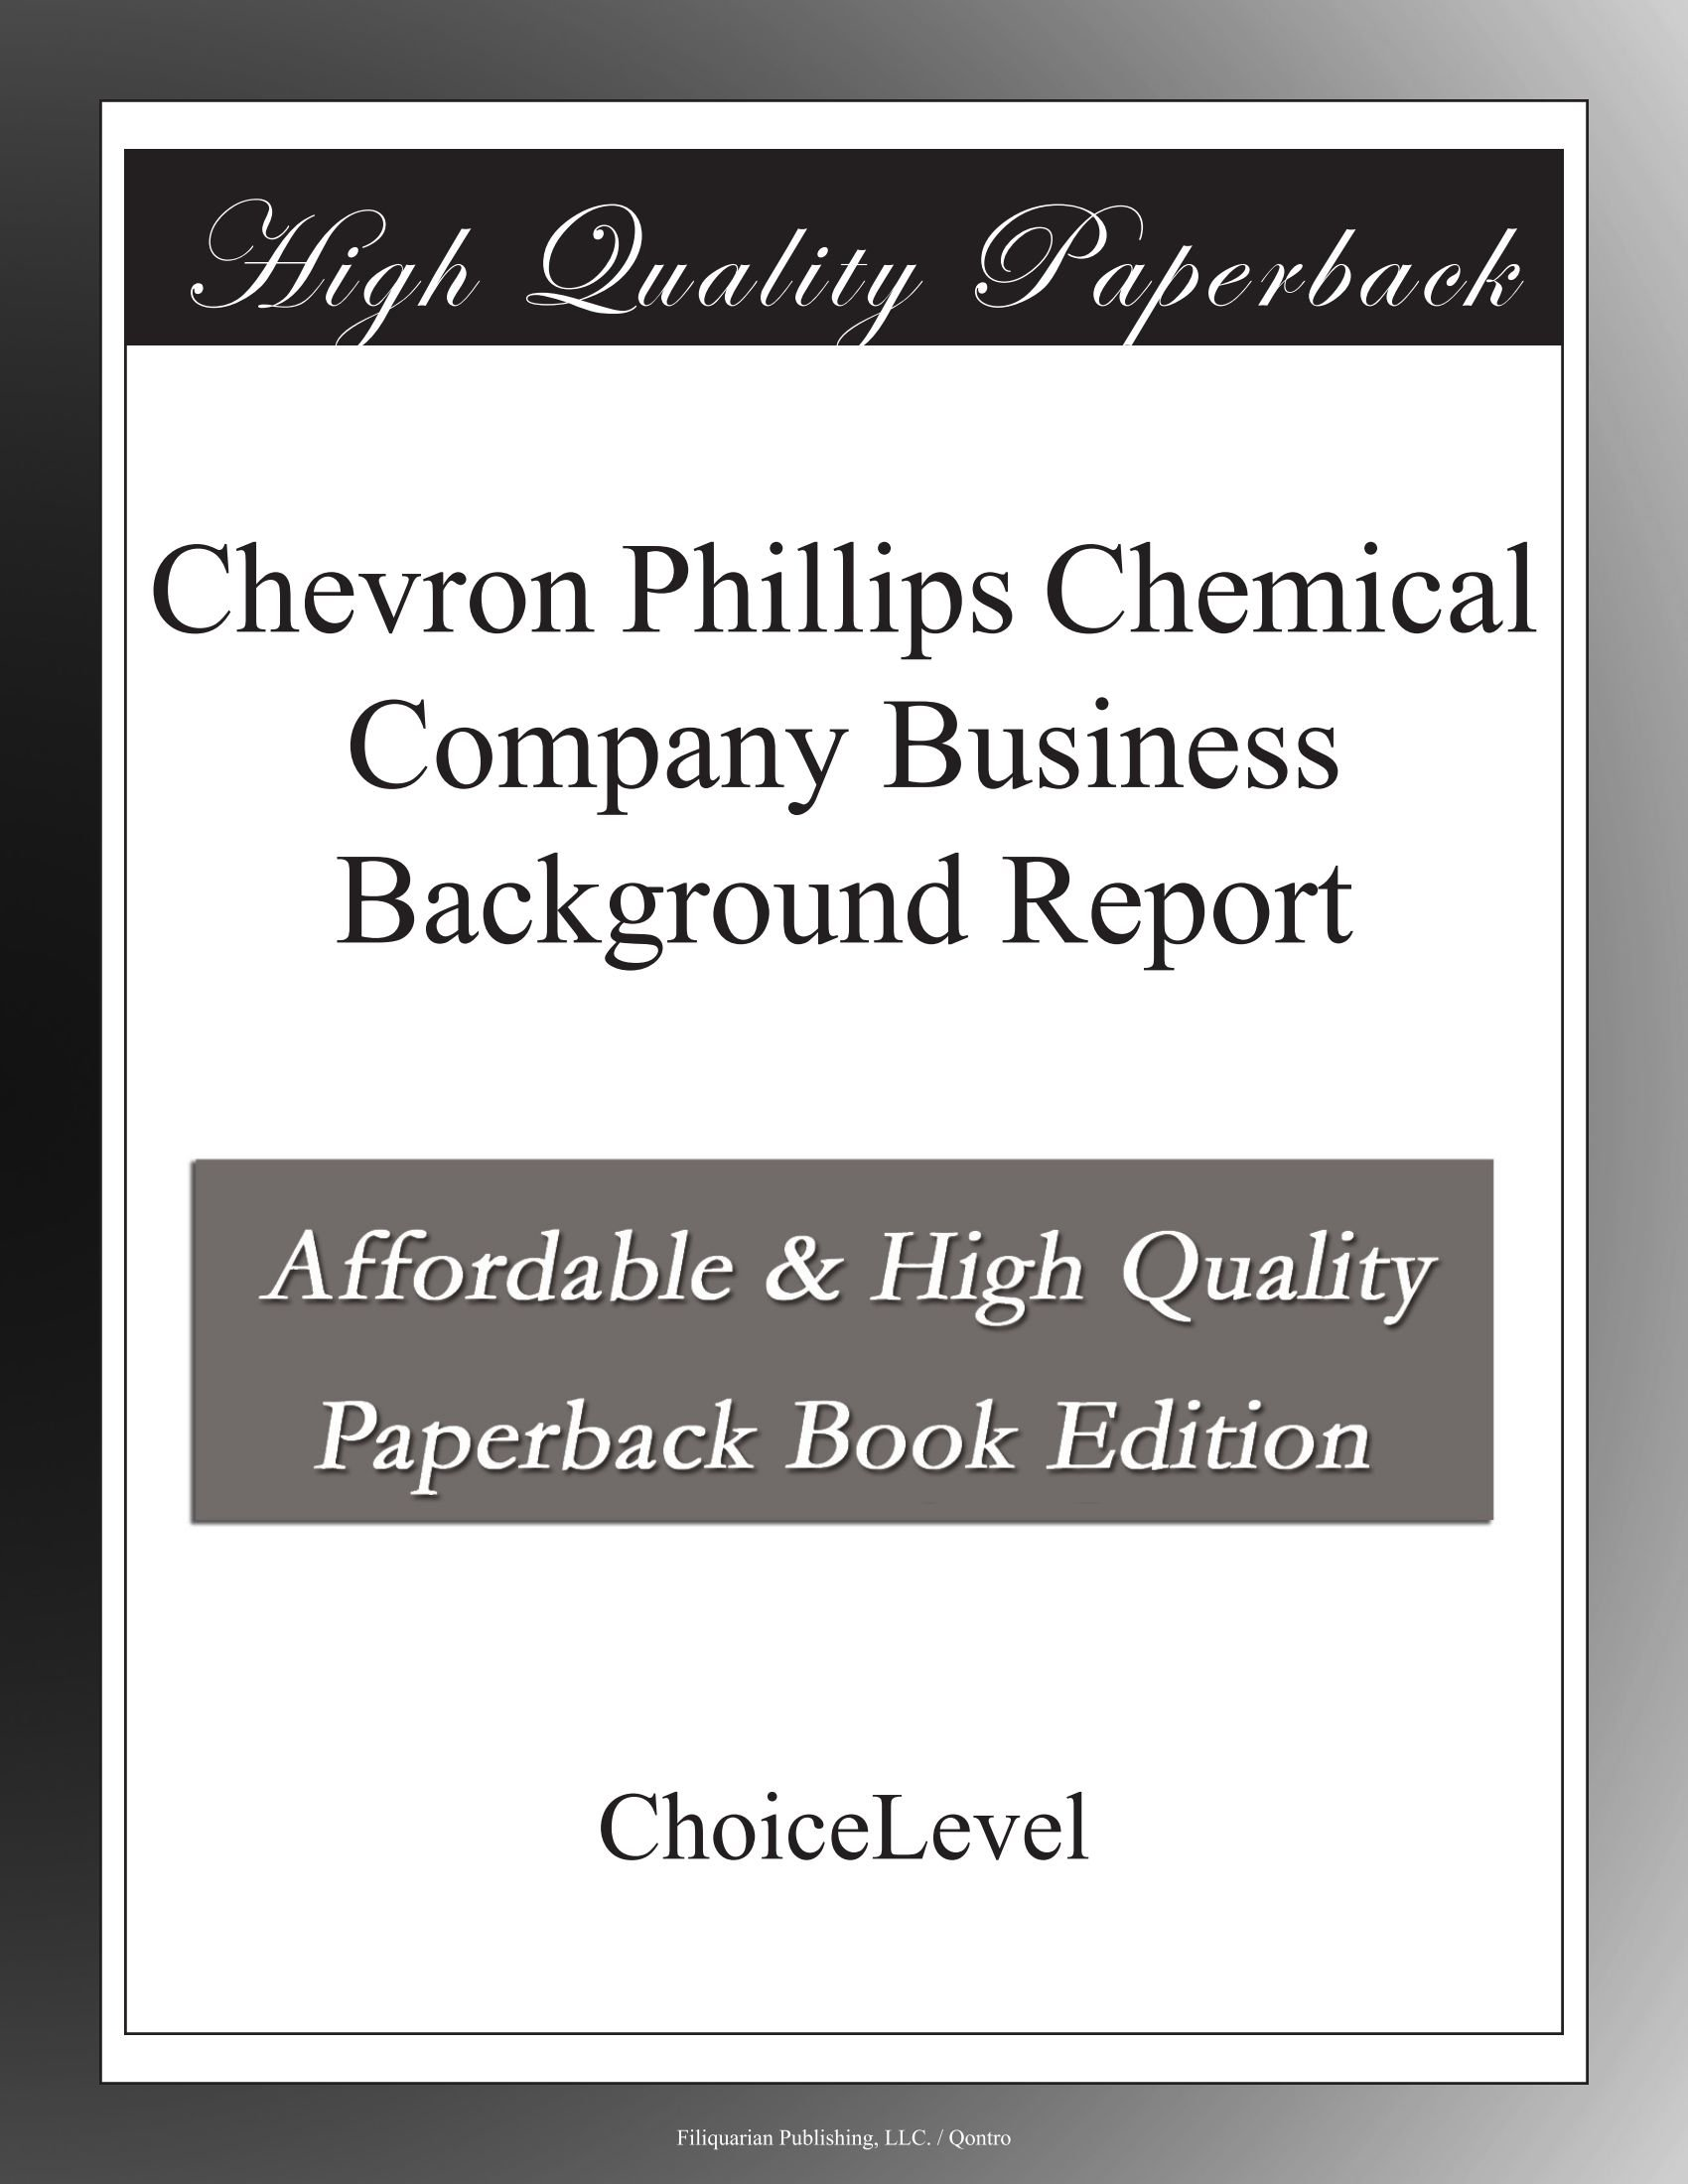 Chevron Phillips Chemical Company Business Background Report ebook